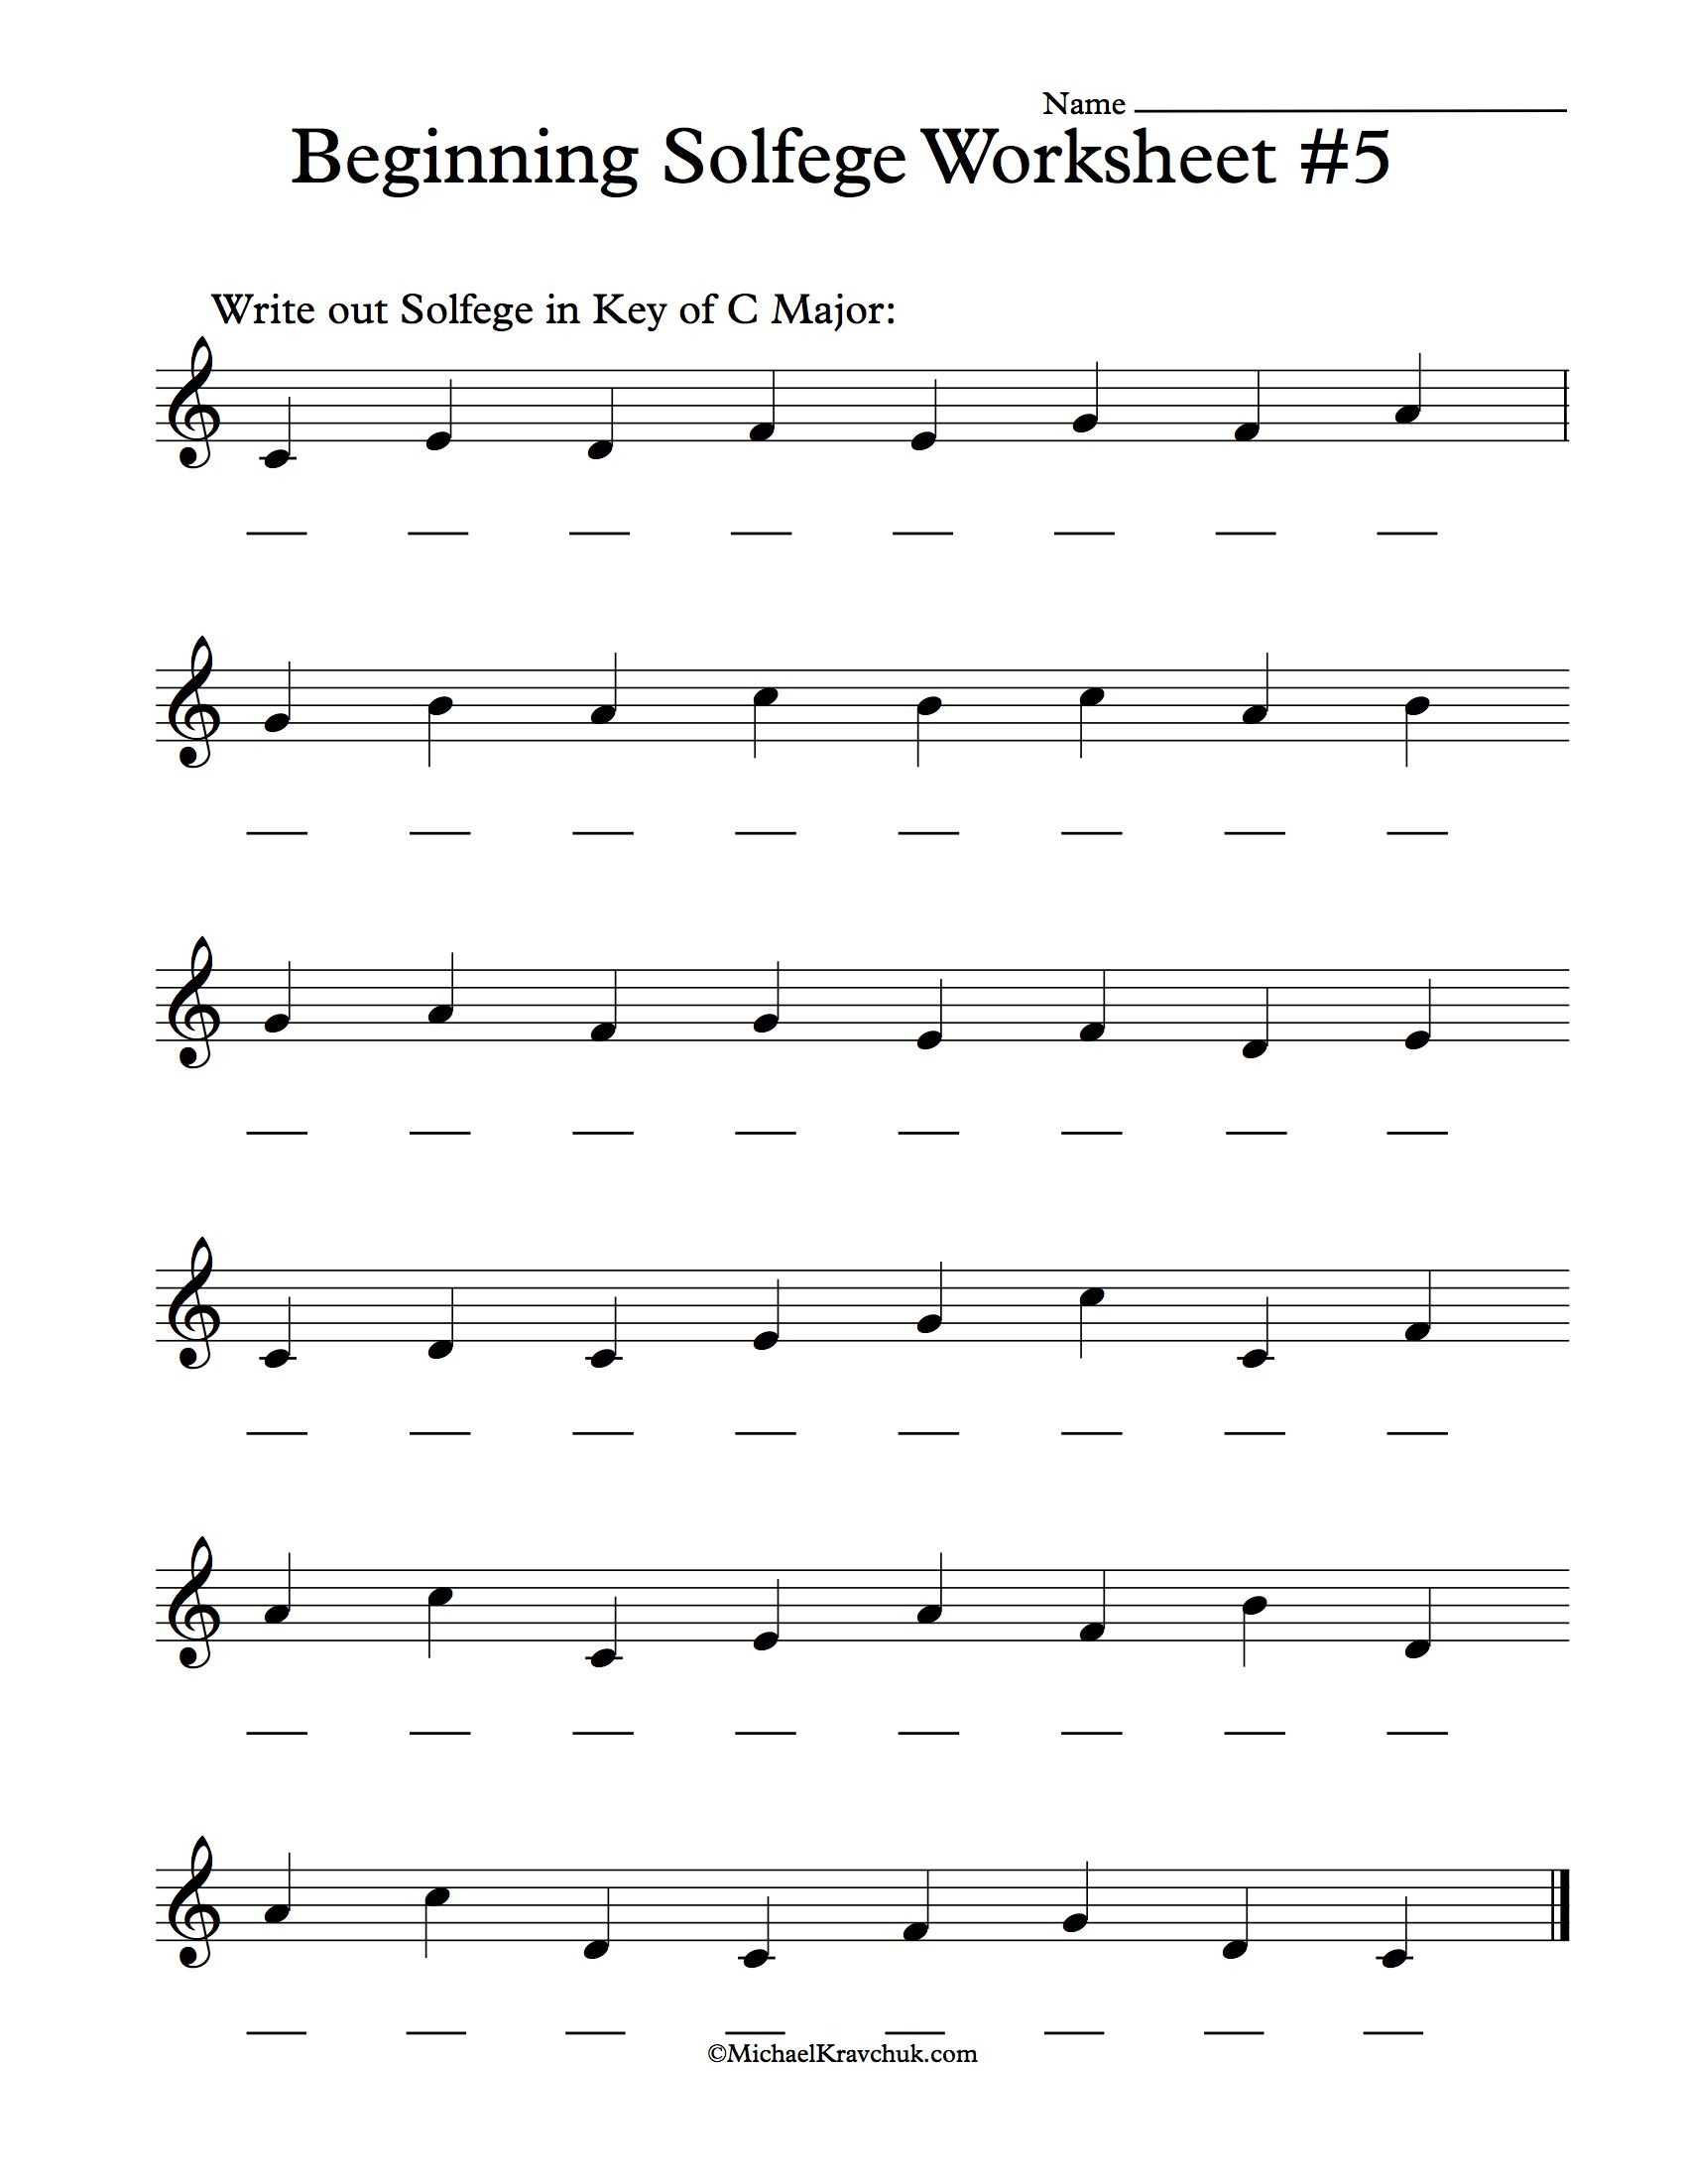 Beginning Solfege Worksheet 5 For Classroom Instructions